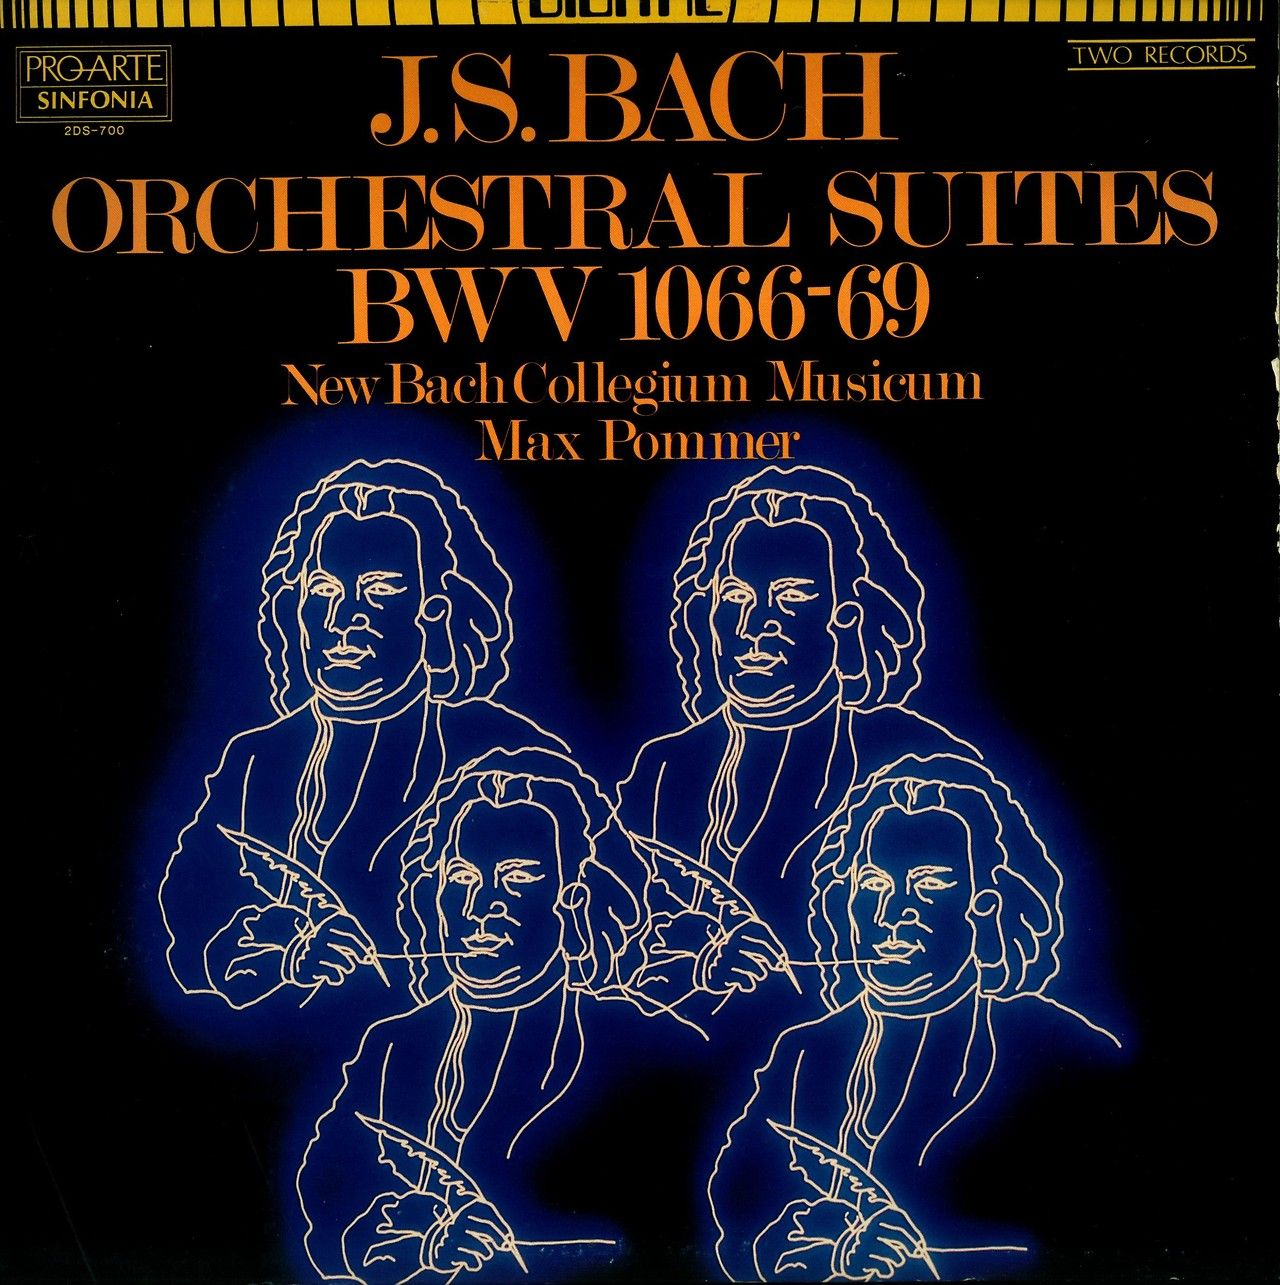 J.S. Bach- Orchestral Suites (BWV 1066-69) New Bach Collegium Musicum, Max Pommer, conductor.  Sinfonia Digital Series (Sinfonia Pro-Arte) 2DS-700 (1983)  Cover art by M.A. Mead